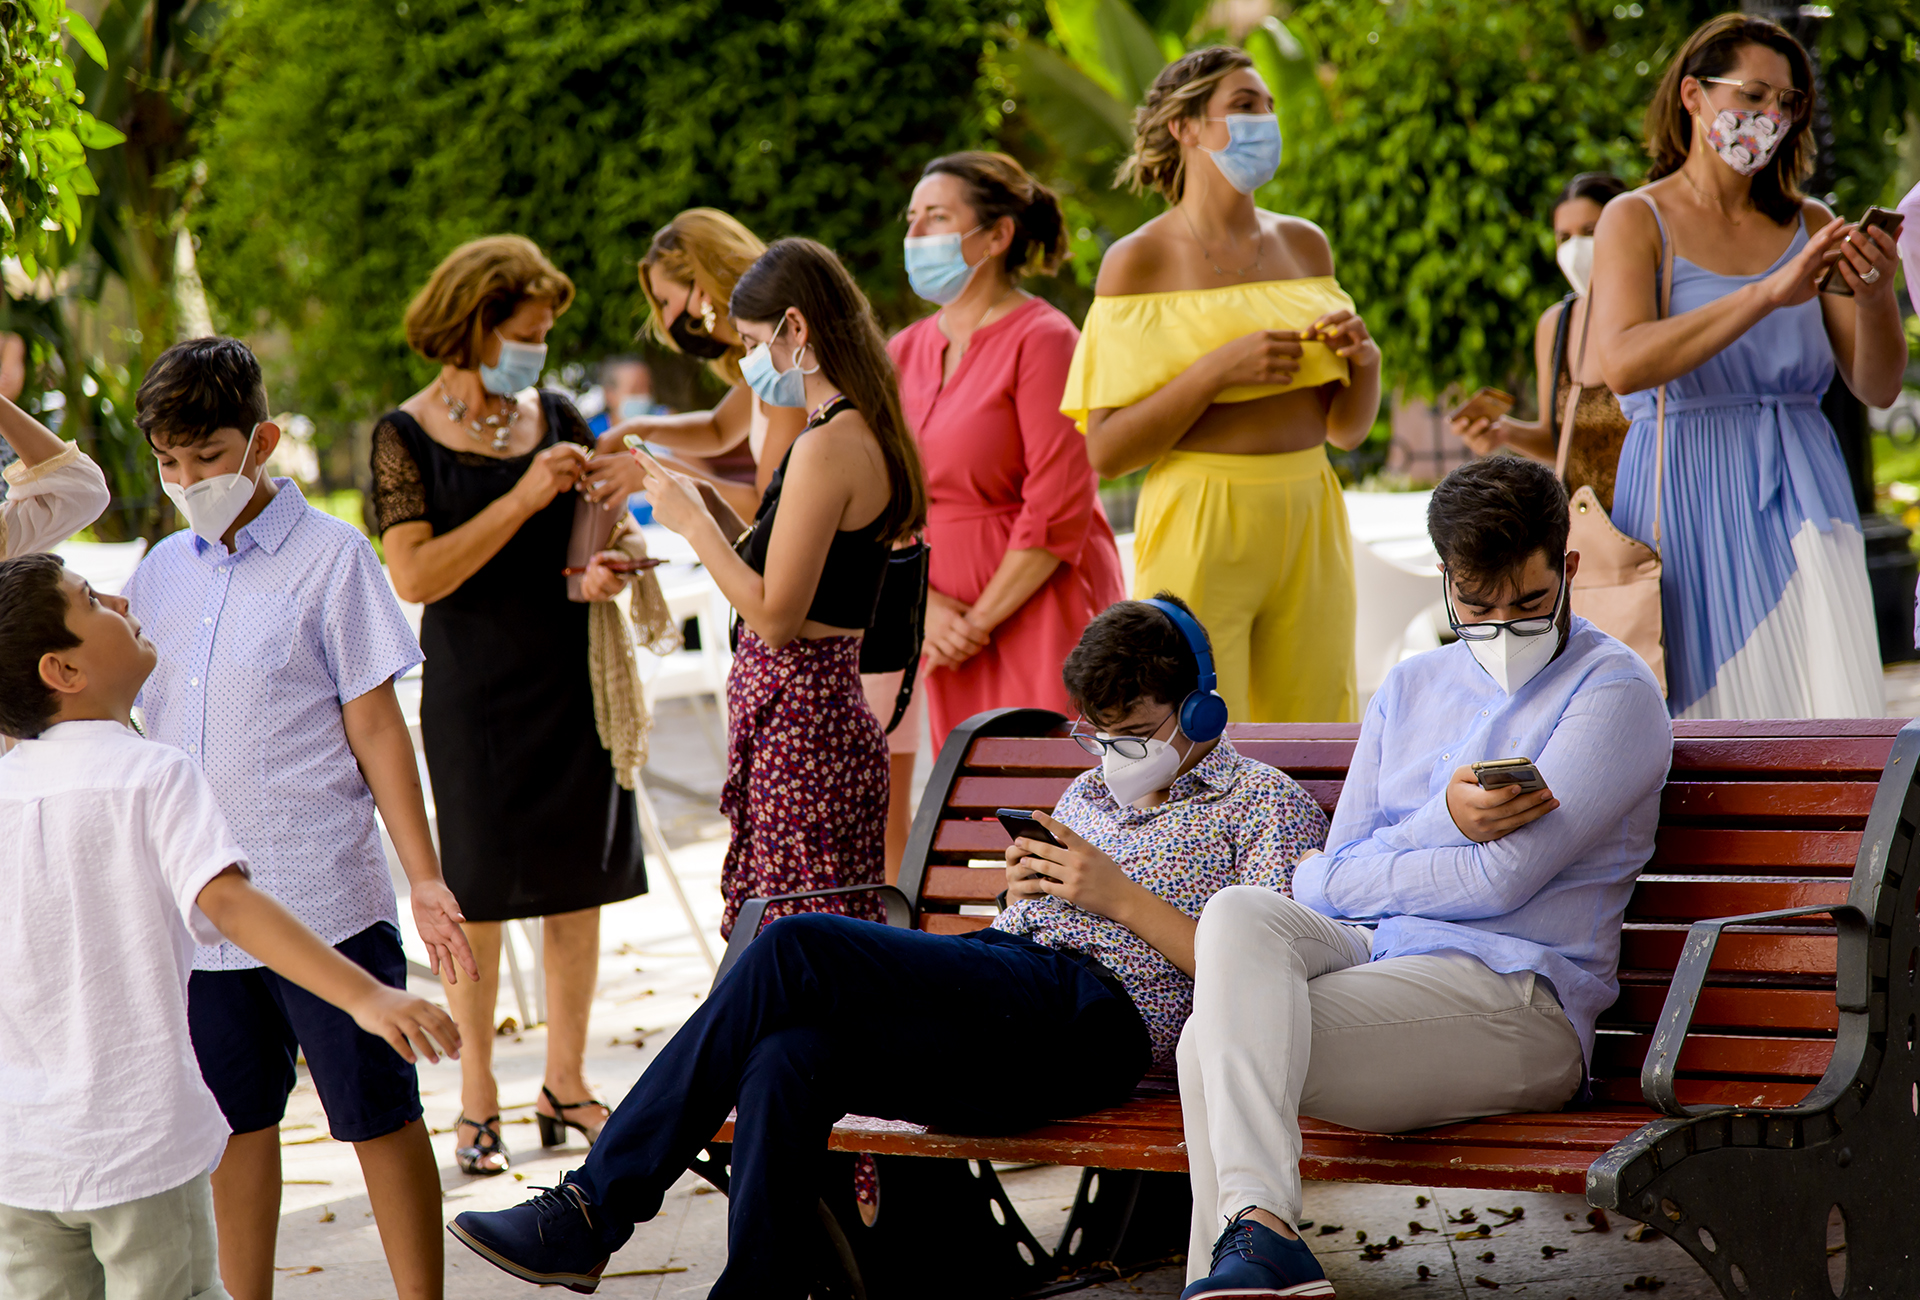 Aguilas COVID church wedding pictures | Family members, wearing masks in an effort to stop the spread of the virus